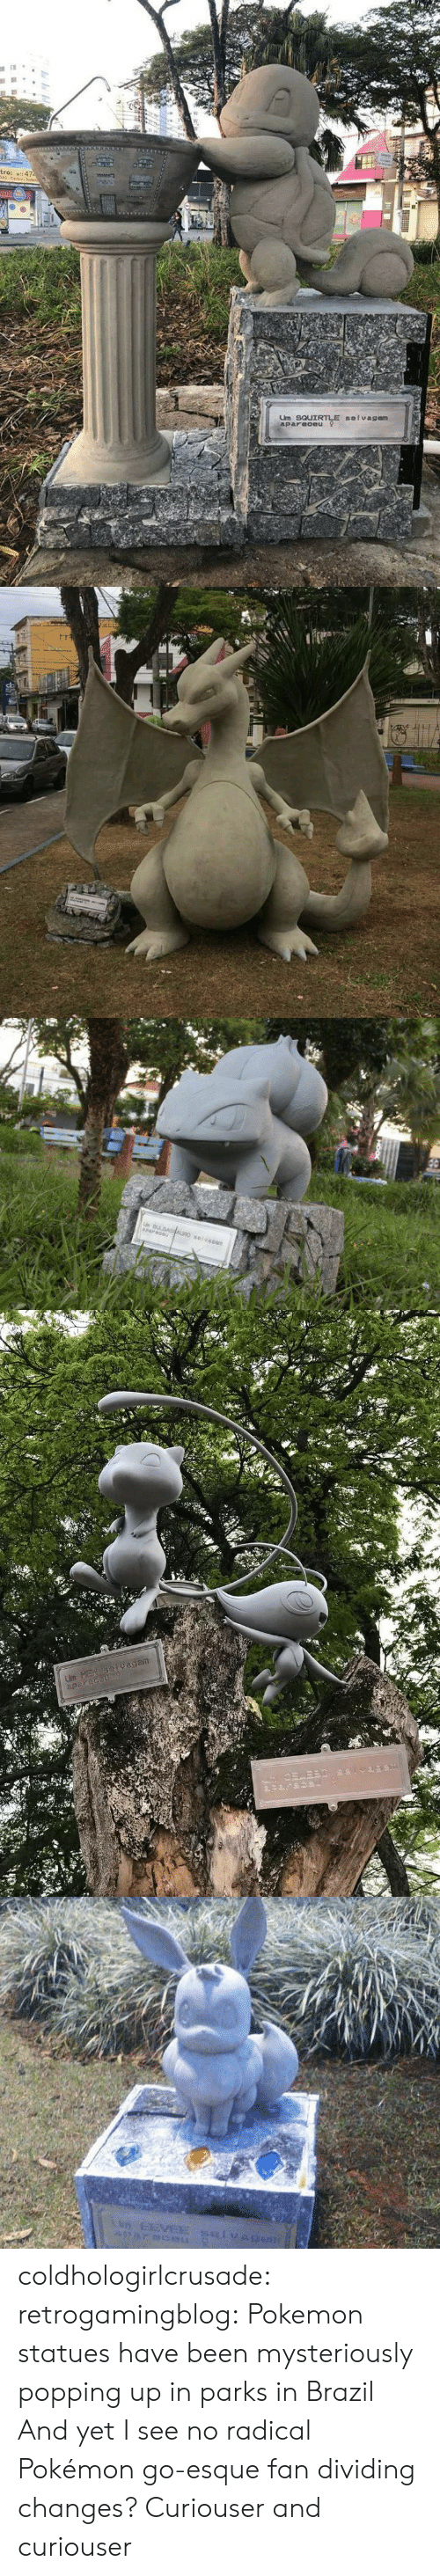 Pokemon, Tumblr, and Blog: Um 9GUI coldhologirlcrusade:  retrogamingblog:  Pokemon statues have been mysteriously popping up in parks in Brazil  And yet I see no radical Pokémon go-esque fan dividing changes? Curiouser and curiouser